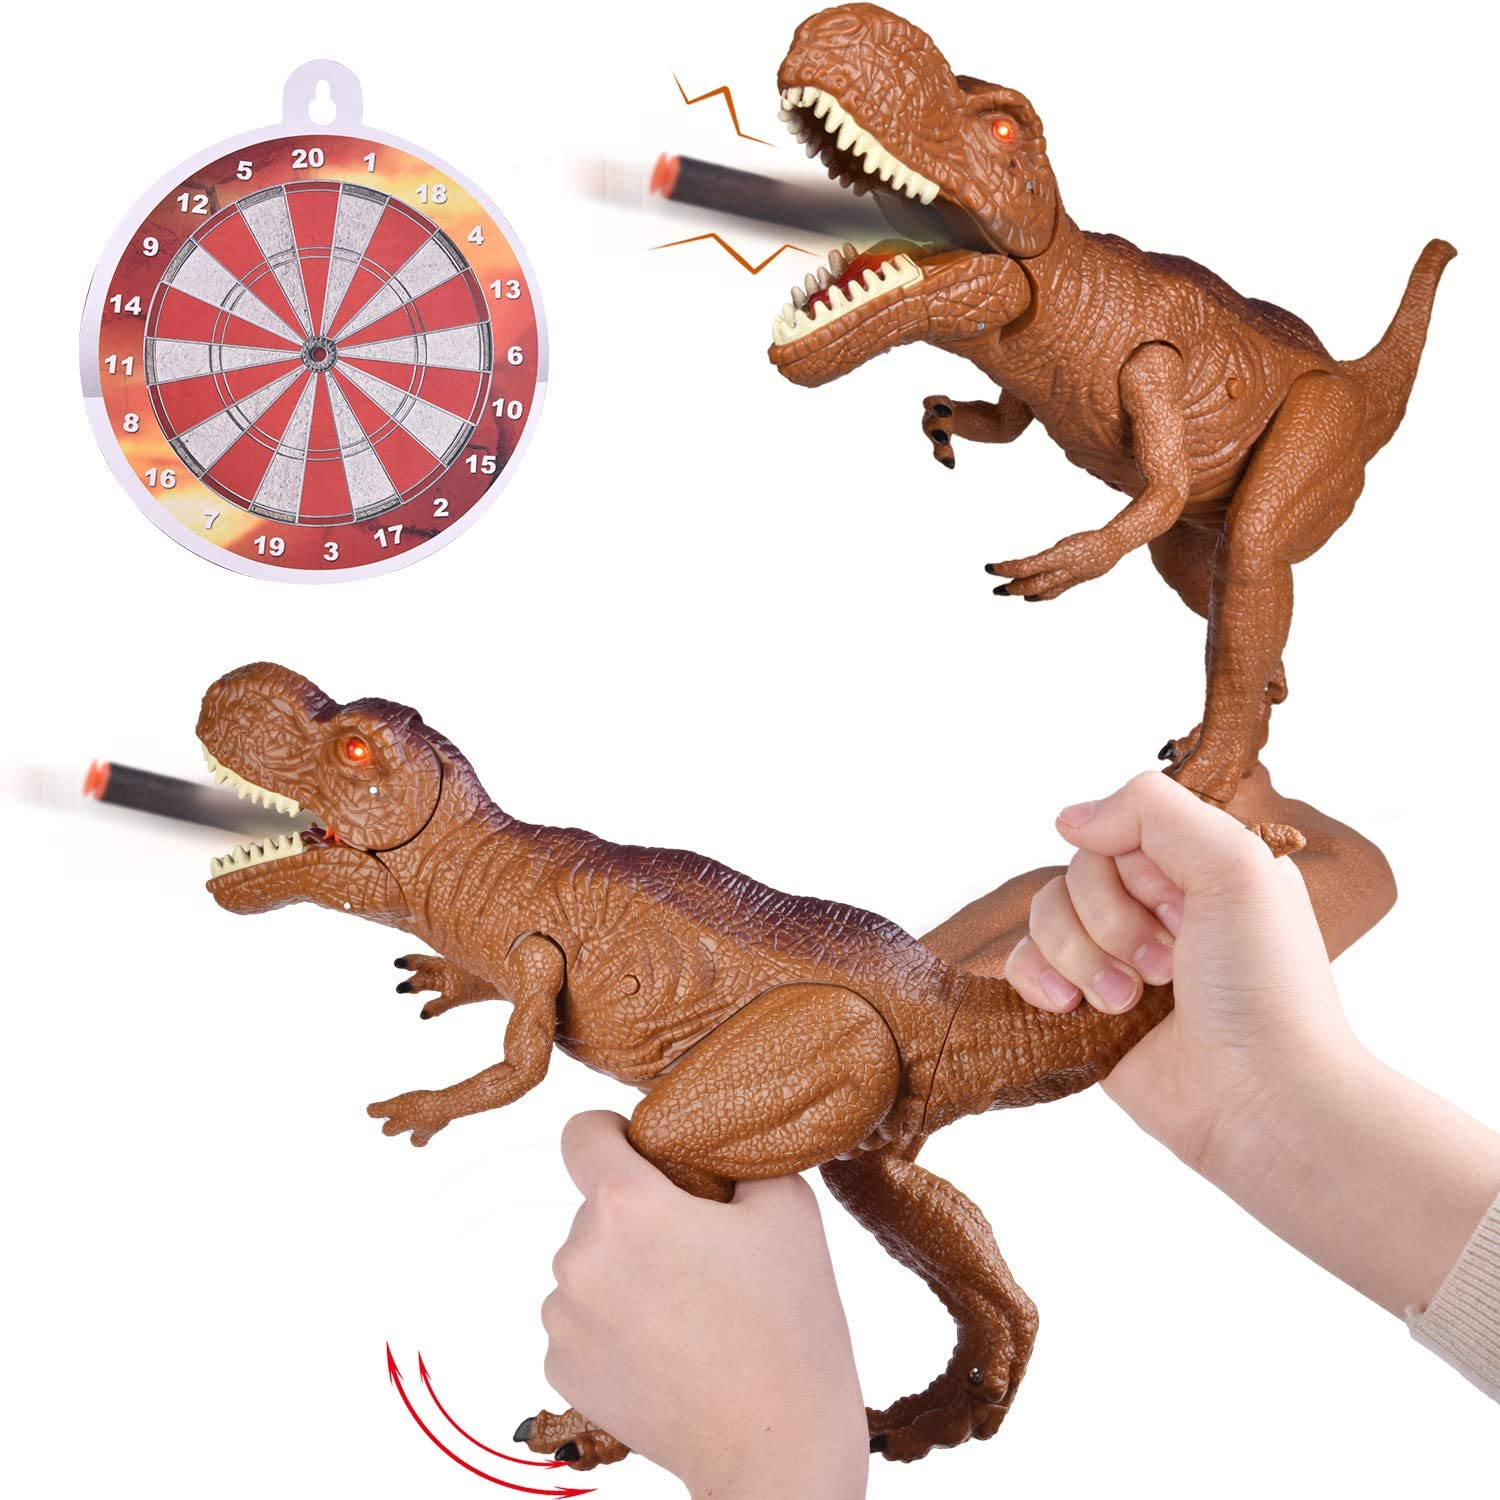 Funlittletoy Dinosaur Toys, Realistic Dinosaur Toys for Kids, Tyrannosaurus Rex Toy Gift for Boys and Girls Ages 3 Years and Up